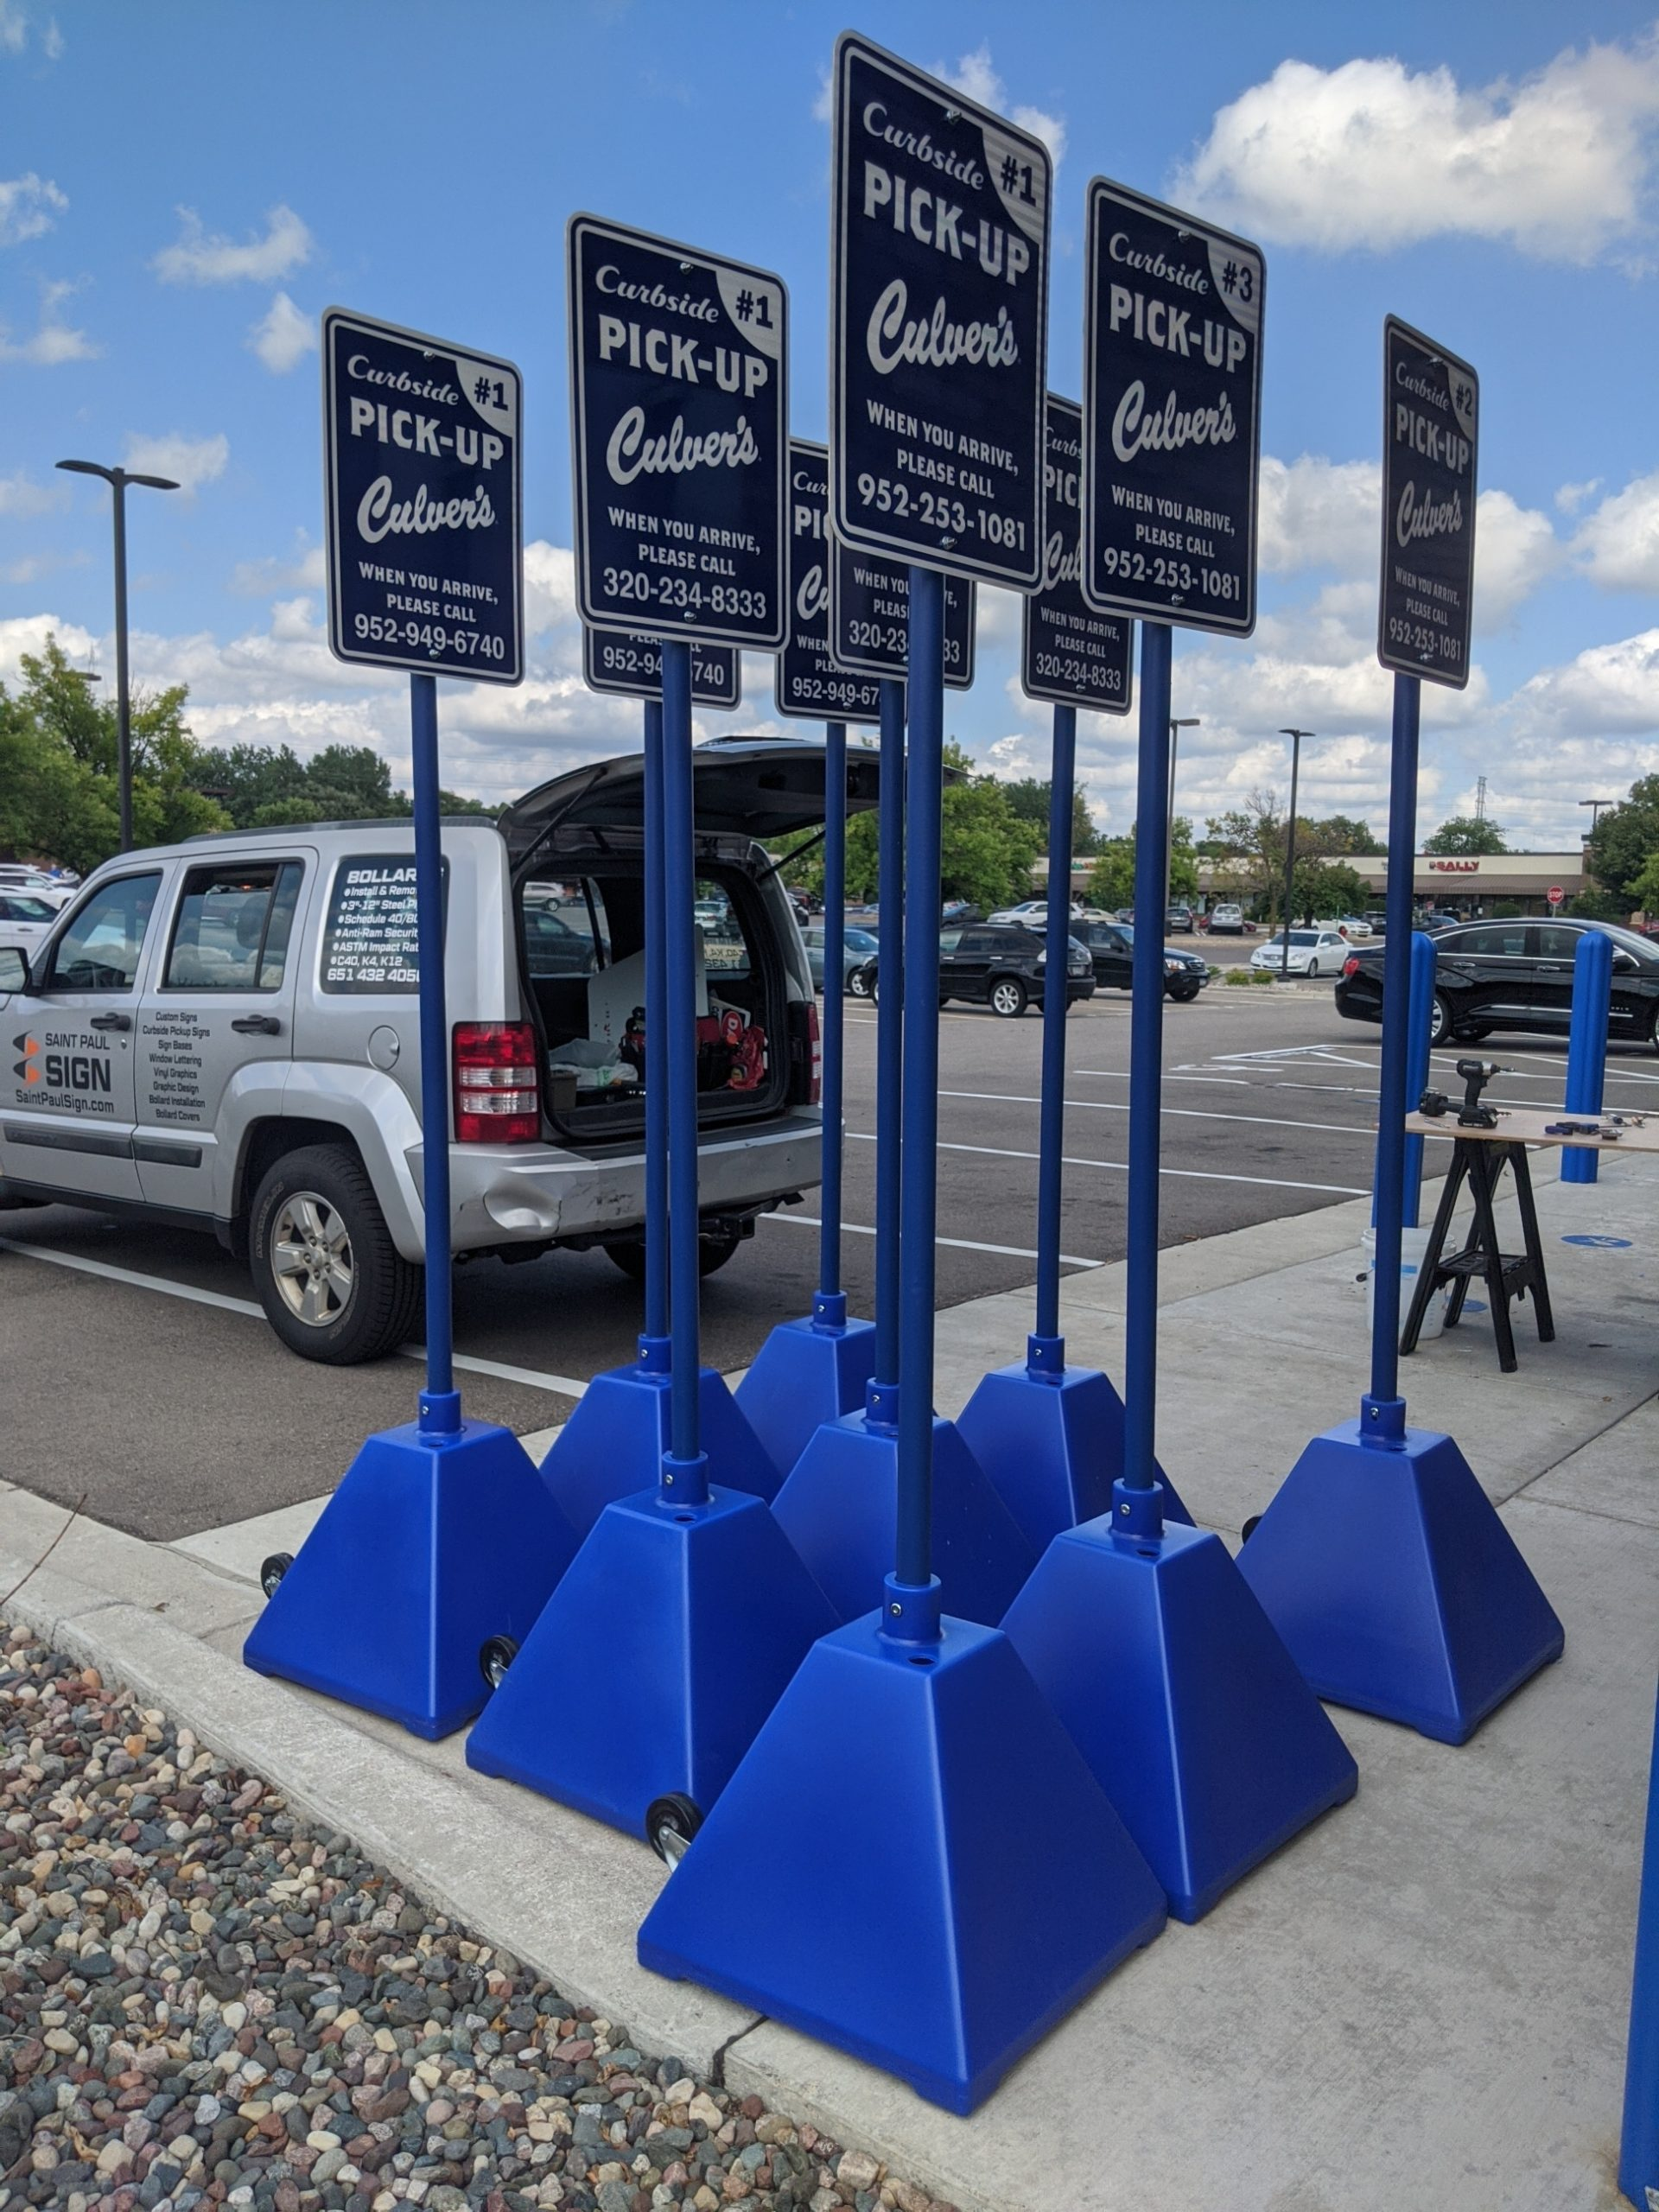 Culver's Curbside Pick Up Signs on Pyramid Bases